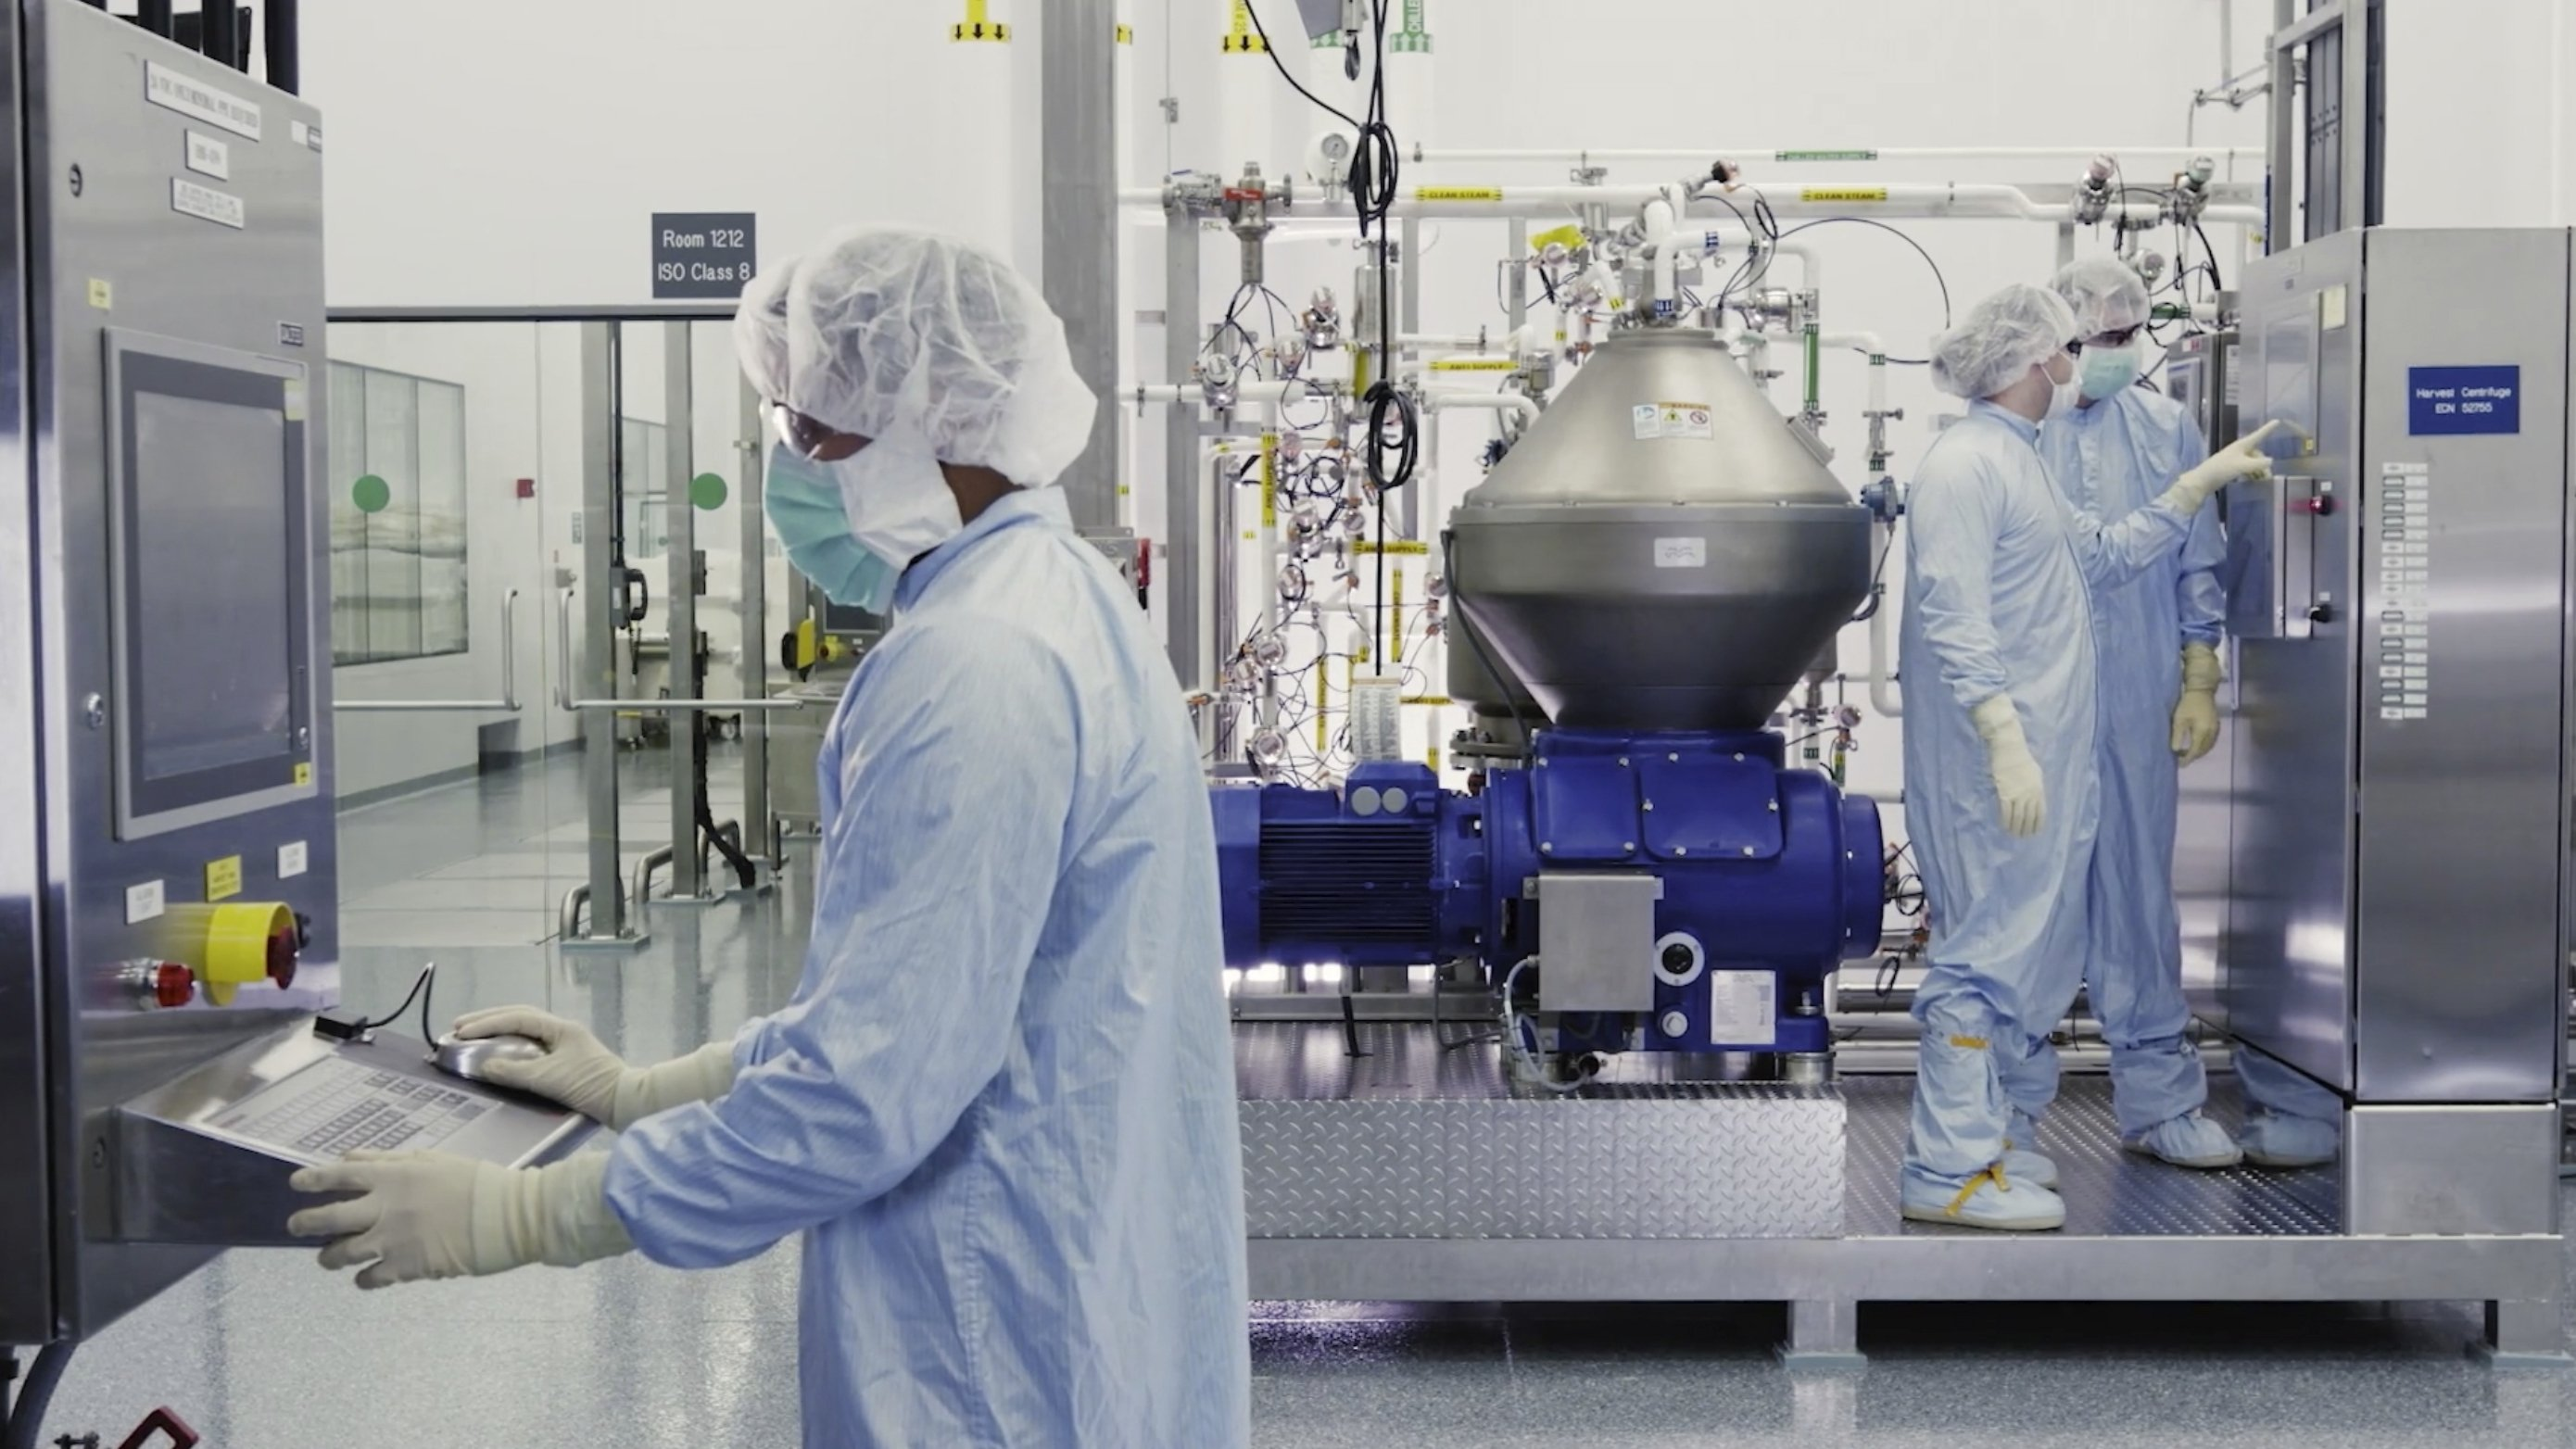 In this undated image from video provided by Regeneron Pharmaceuticals on Friday, Oct. 2, 2020, scientists work with a bioreactor at a company facility in New York state, for efforts on an experimental coronavirus antibody drug. (Regeneron via AP)